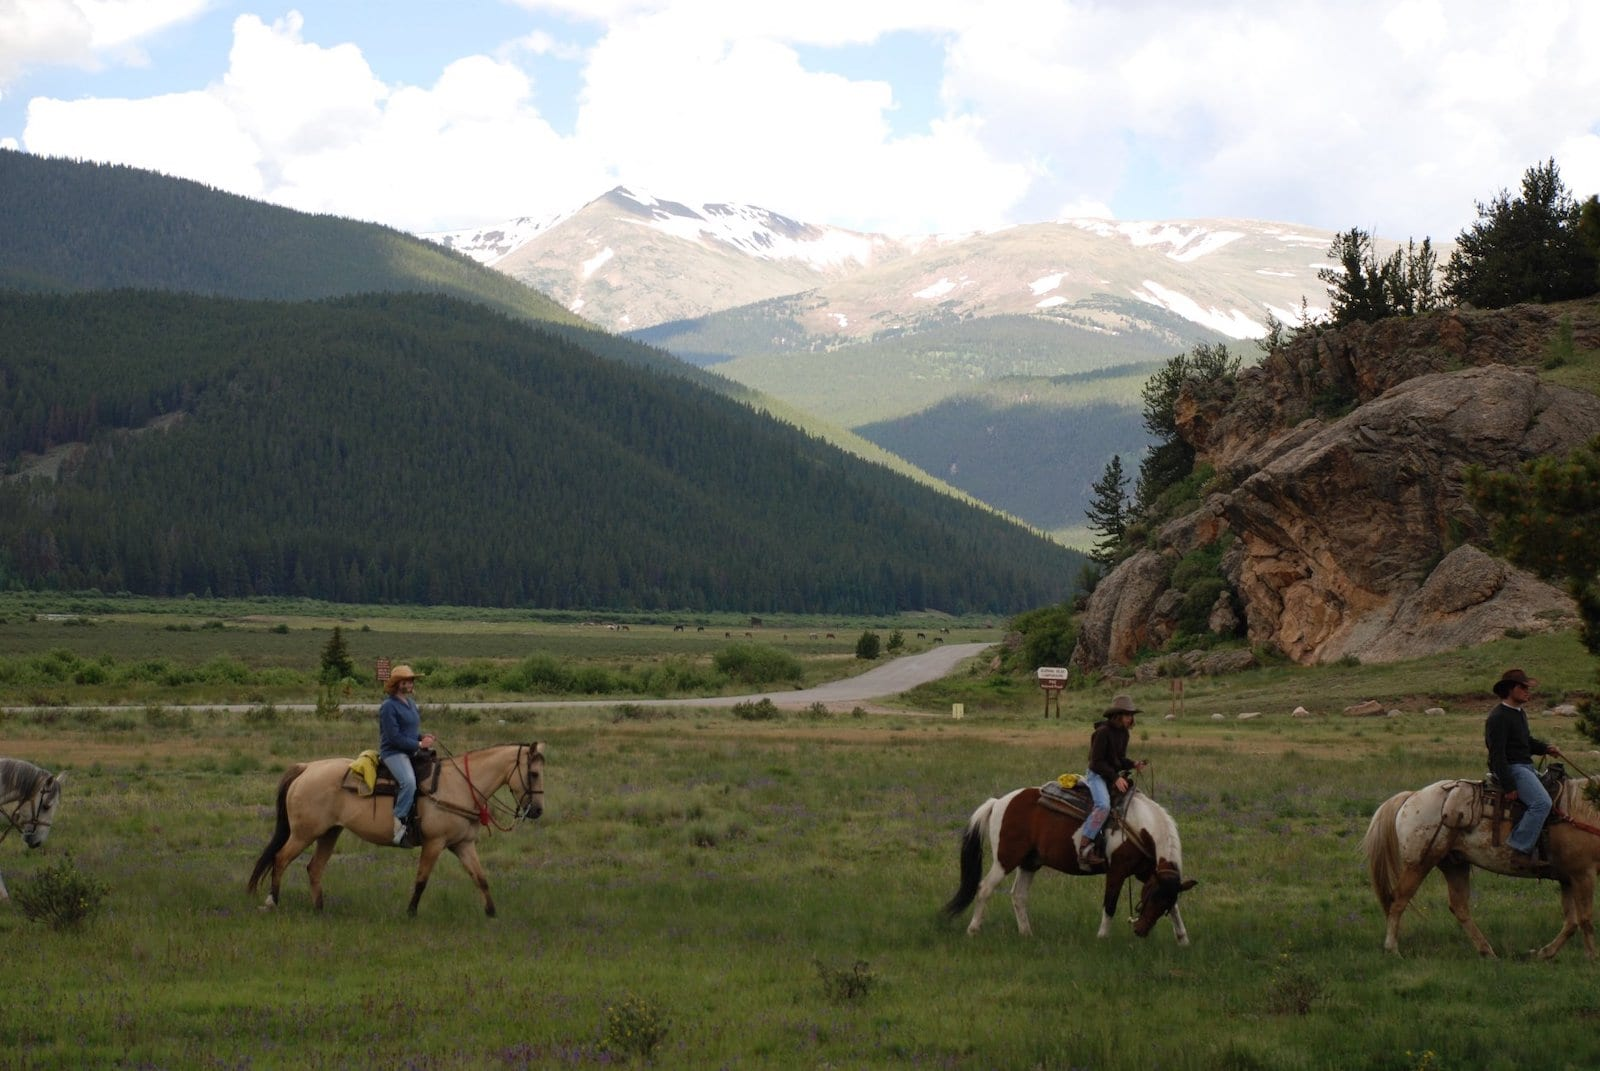 Image of people riding horses in a valley at Tumbling River Ranch, CO